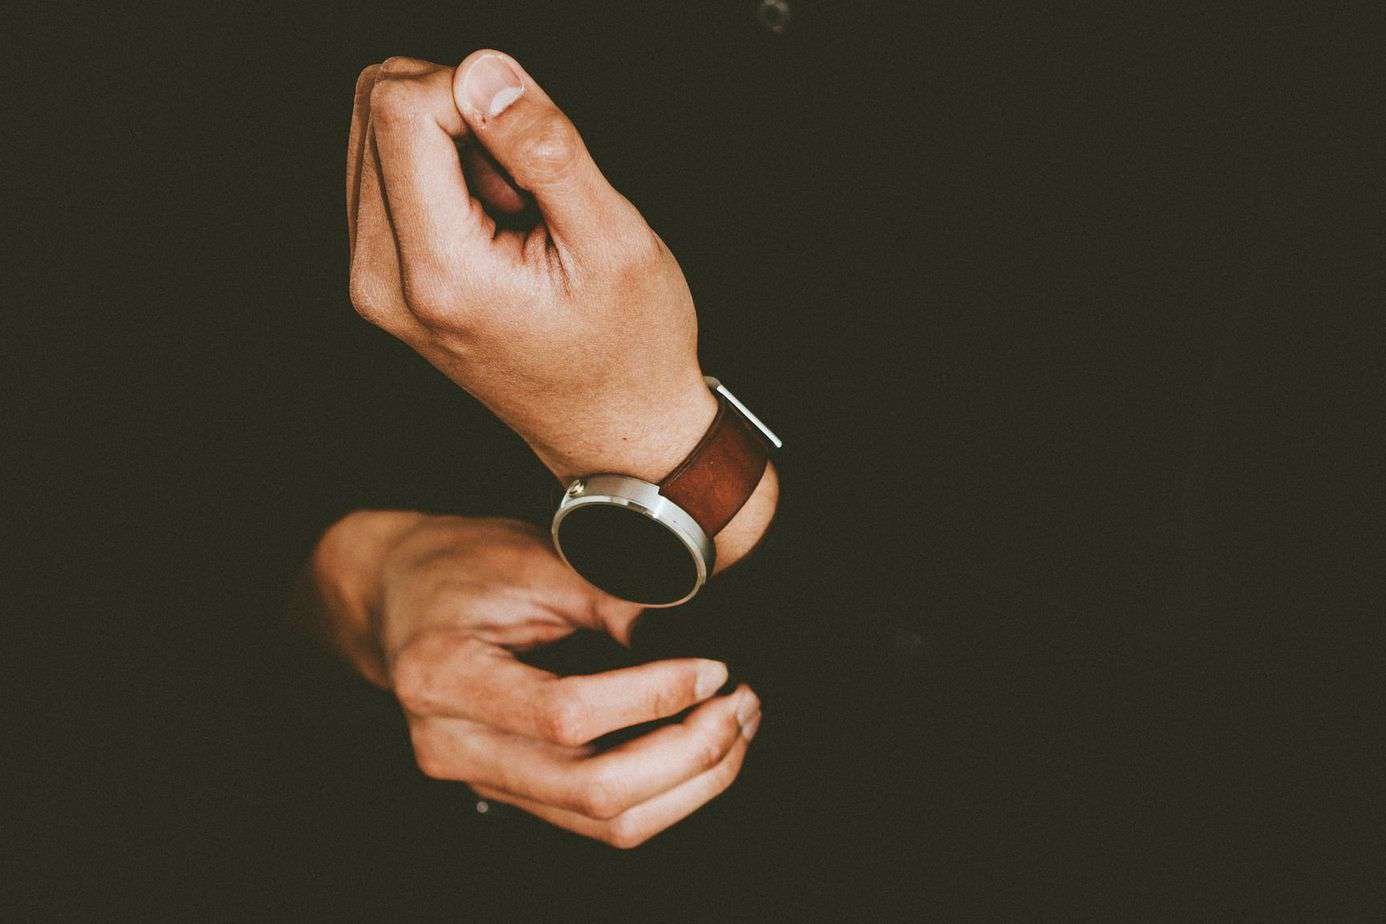 hands cropped